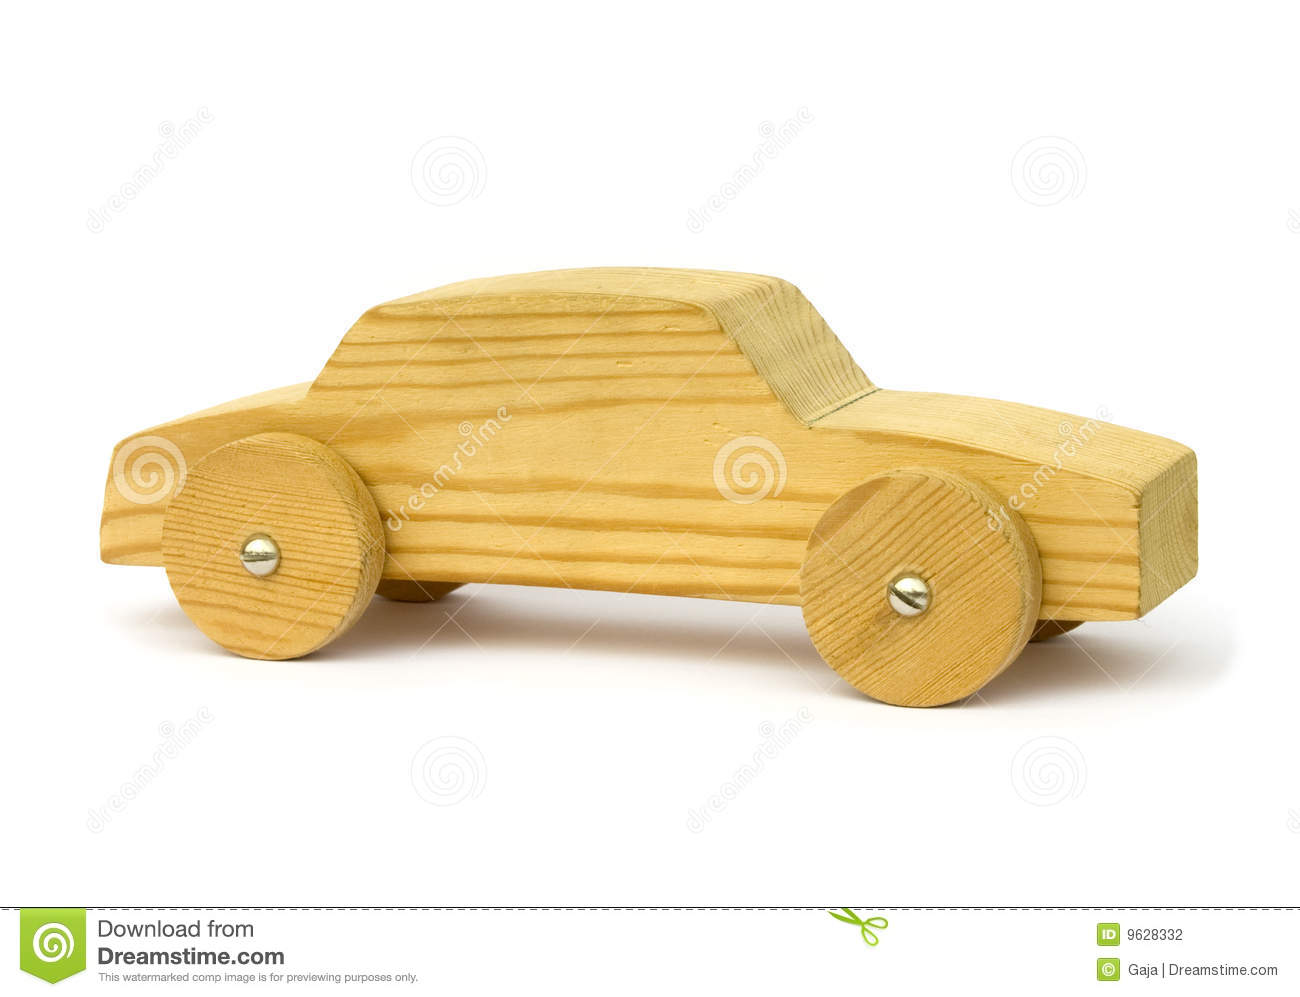 Simplistic home made wooden toy car.